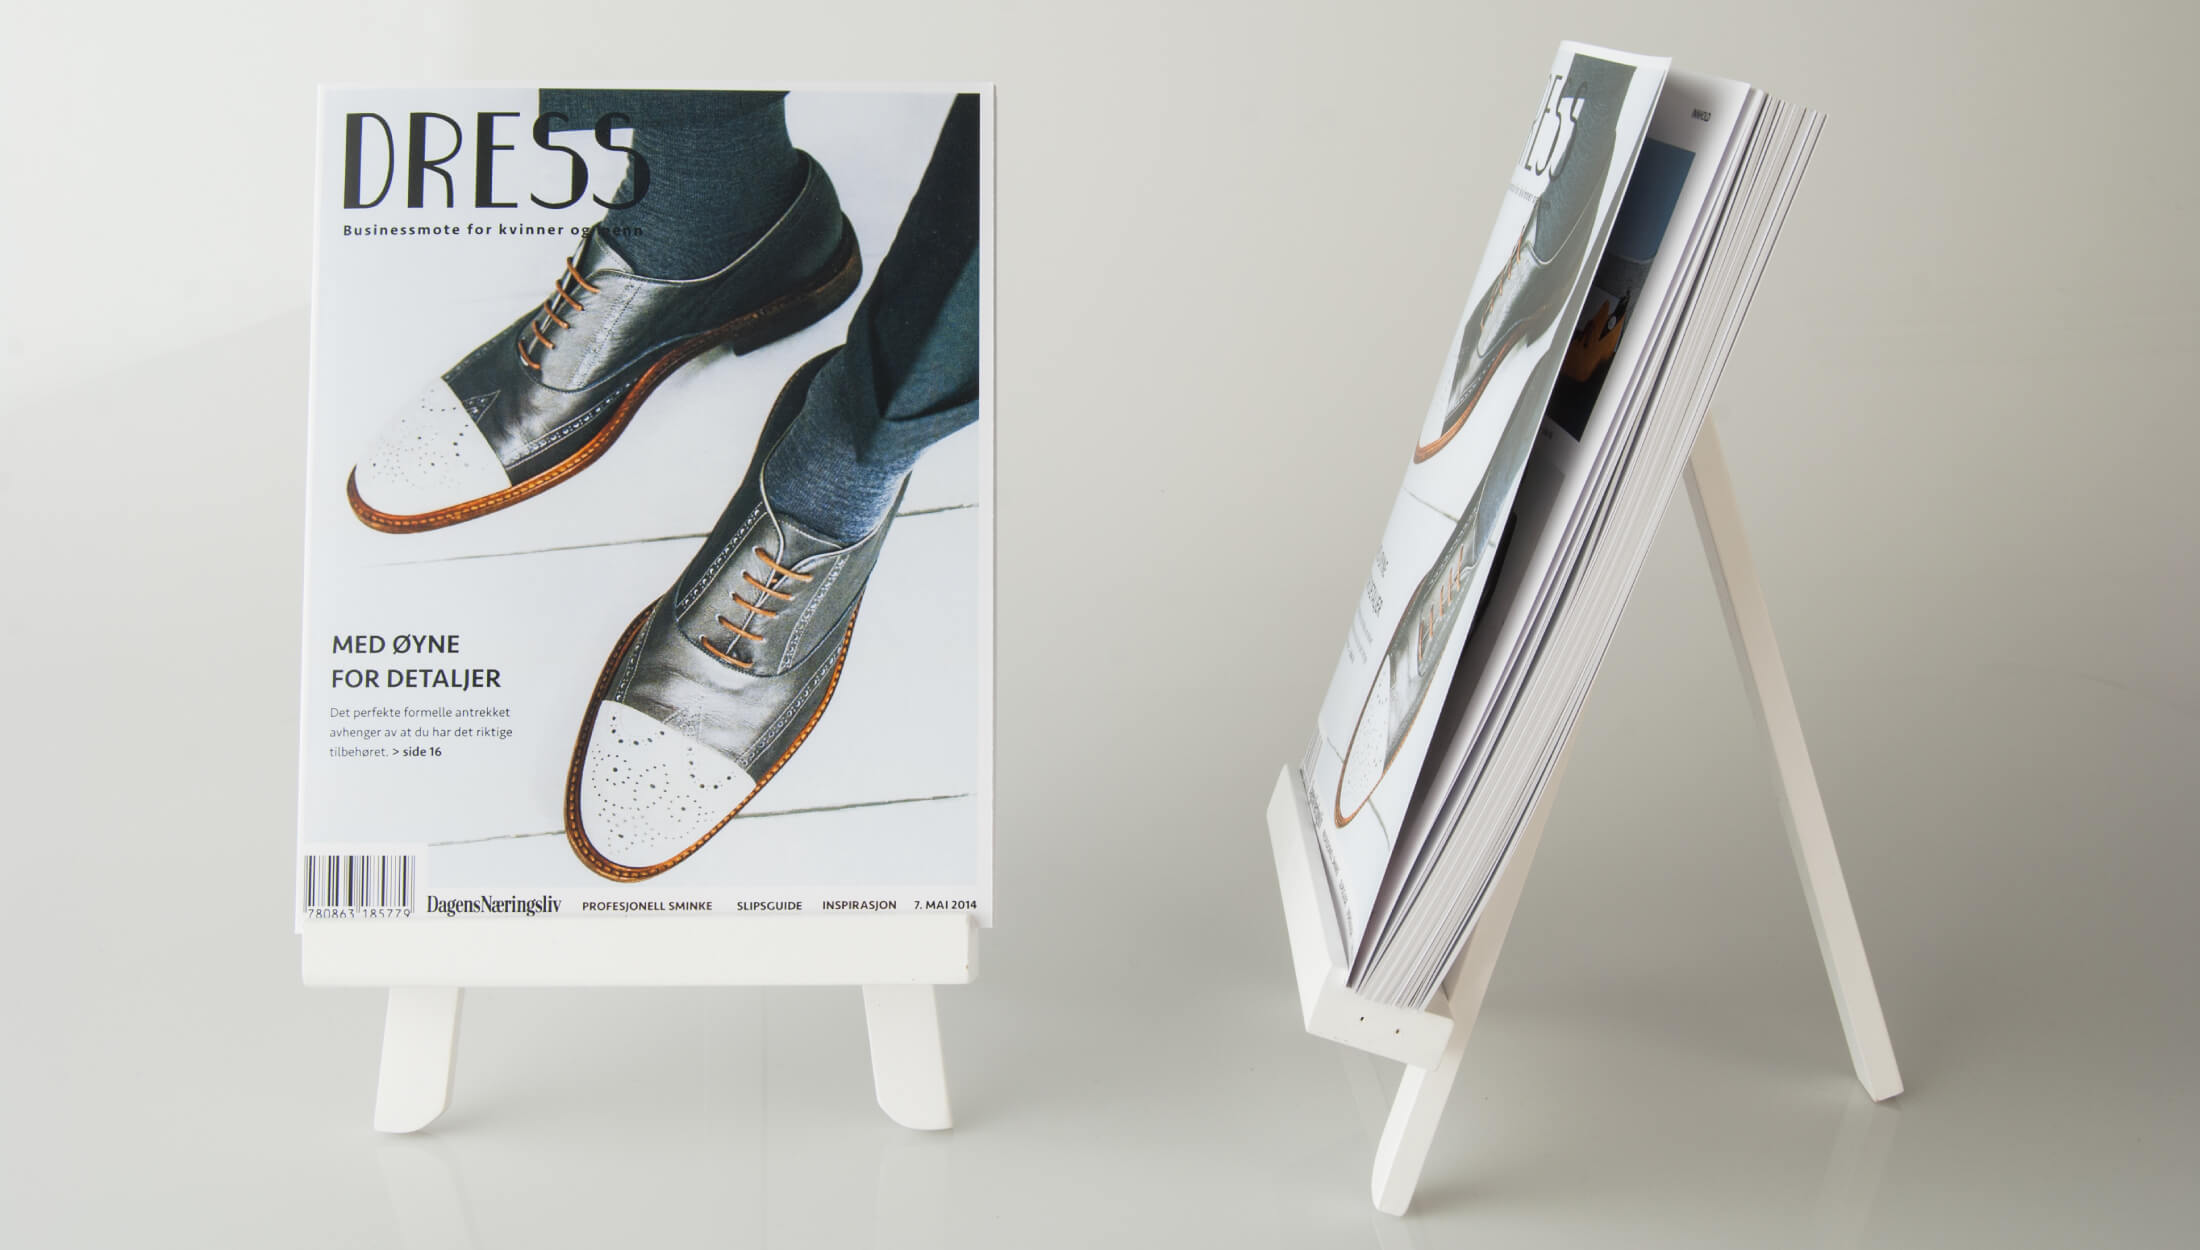 dress-magazine-front-page-on-easel